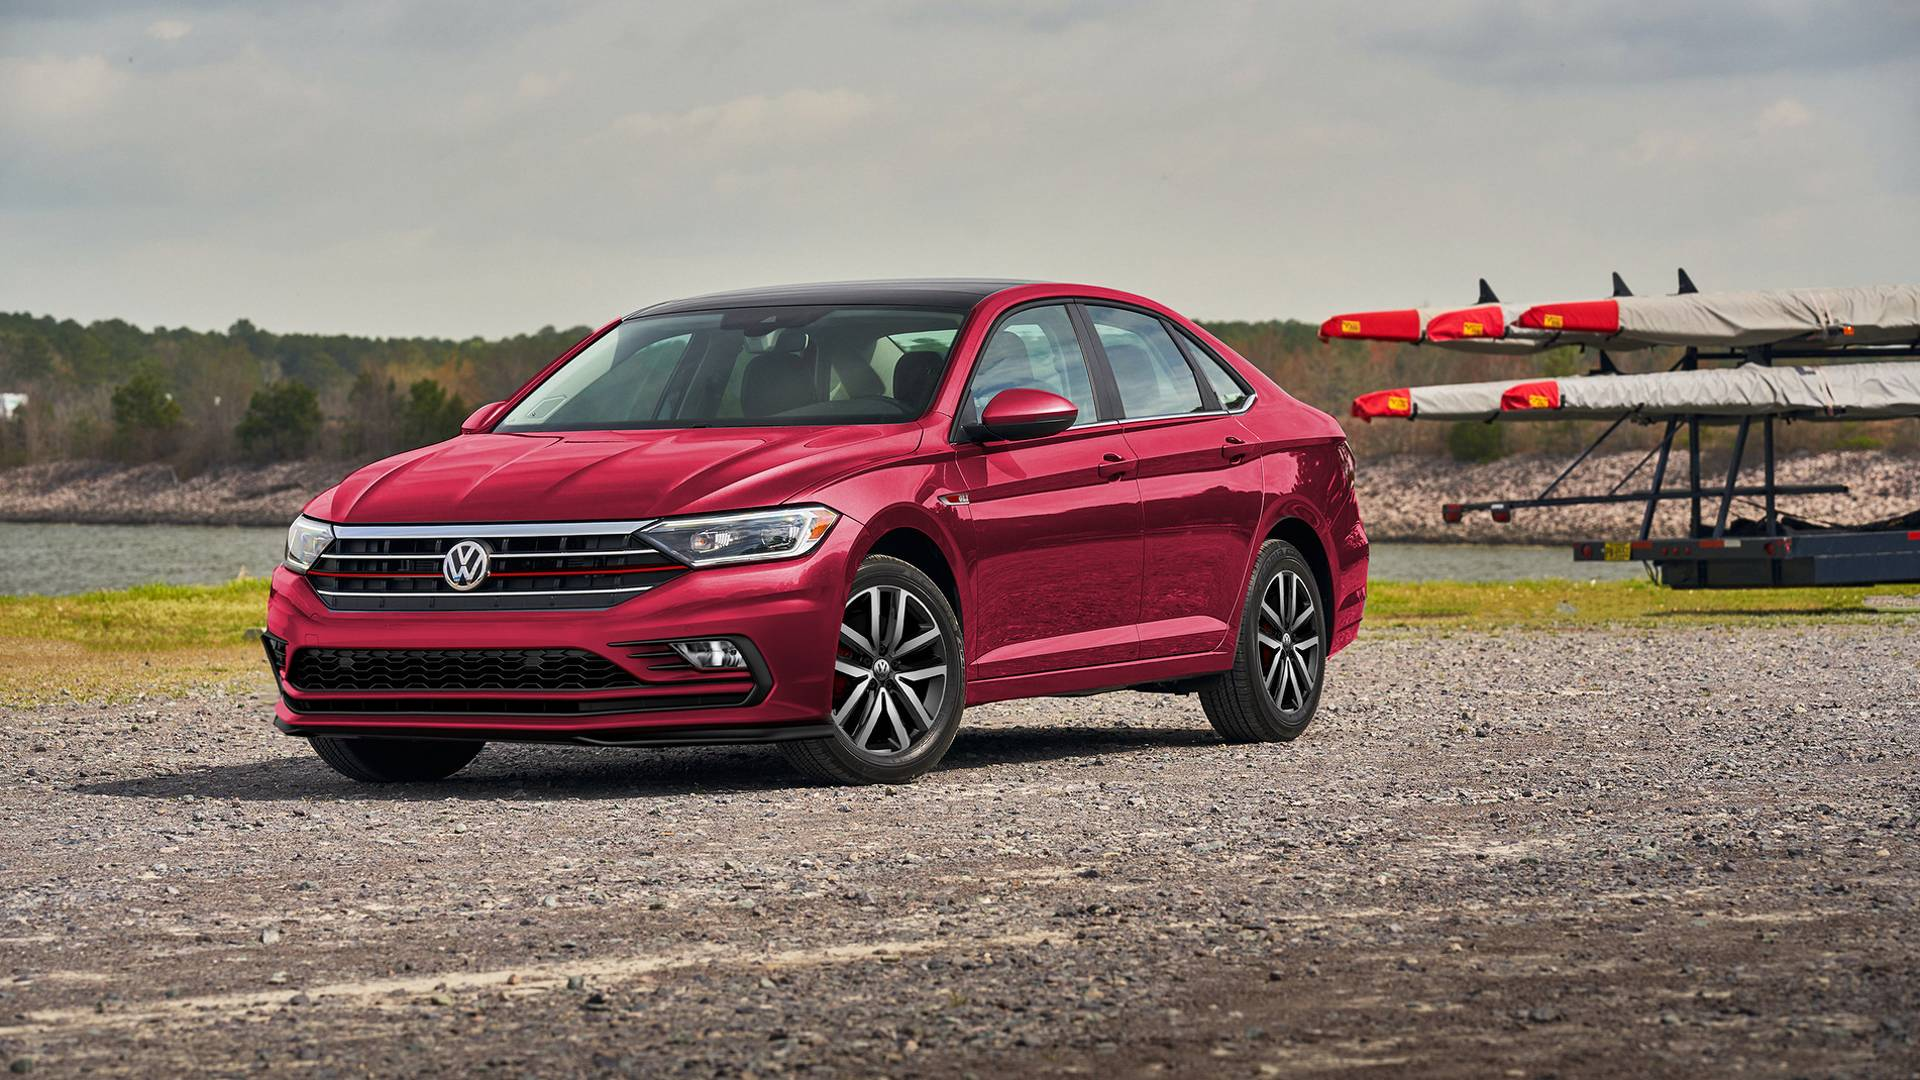 VW Jetta GLI Rendering Shows The Affordable Sports Sedan We're ...